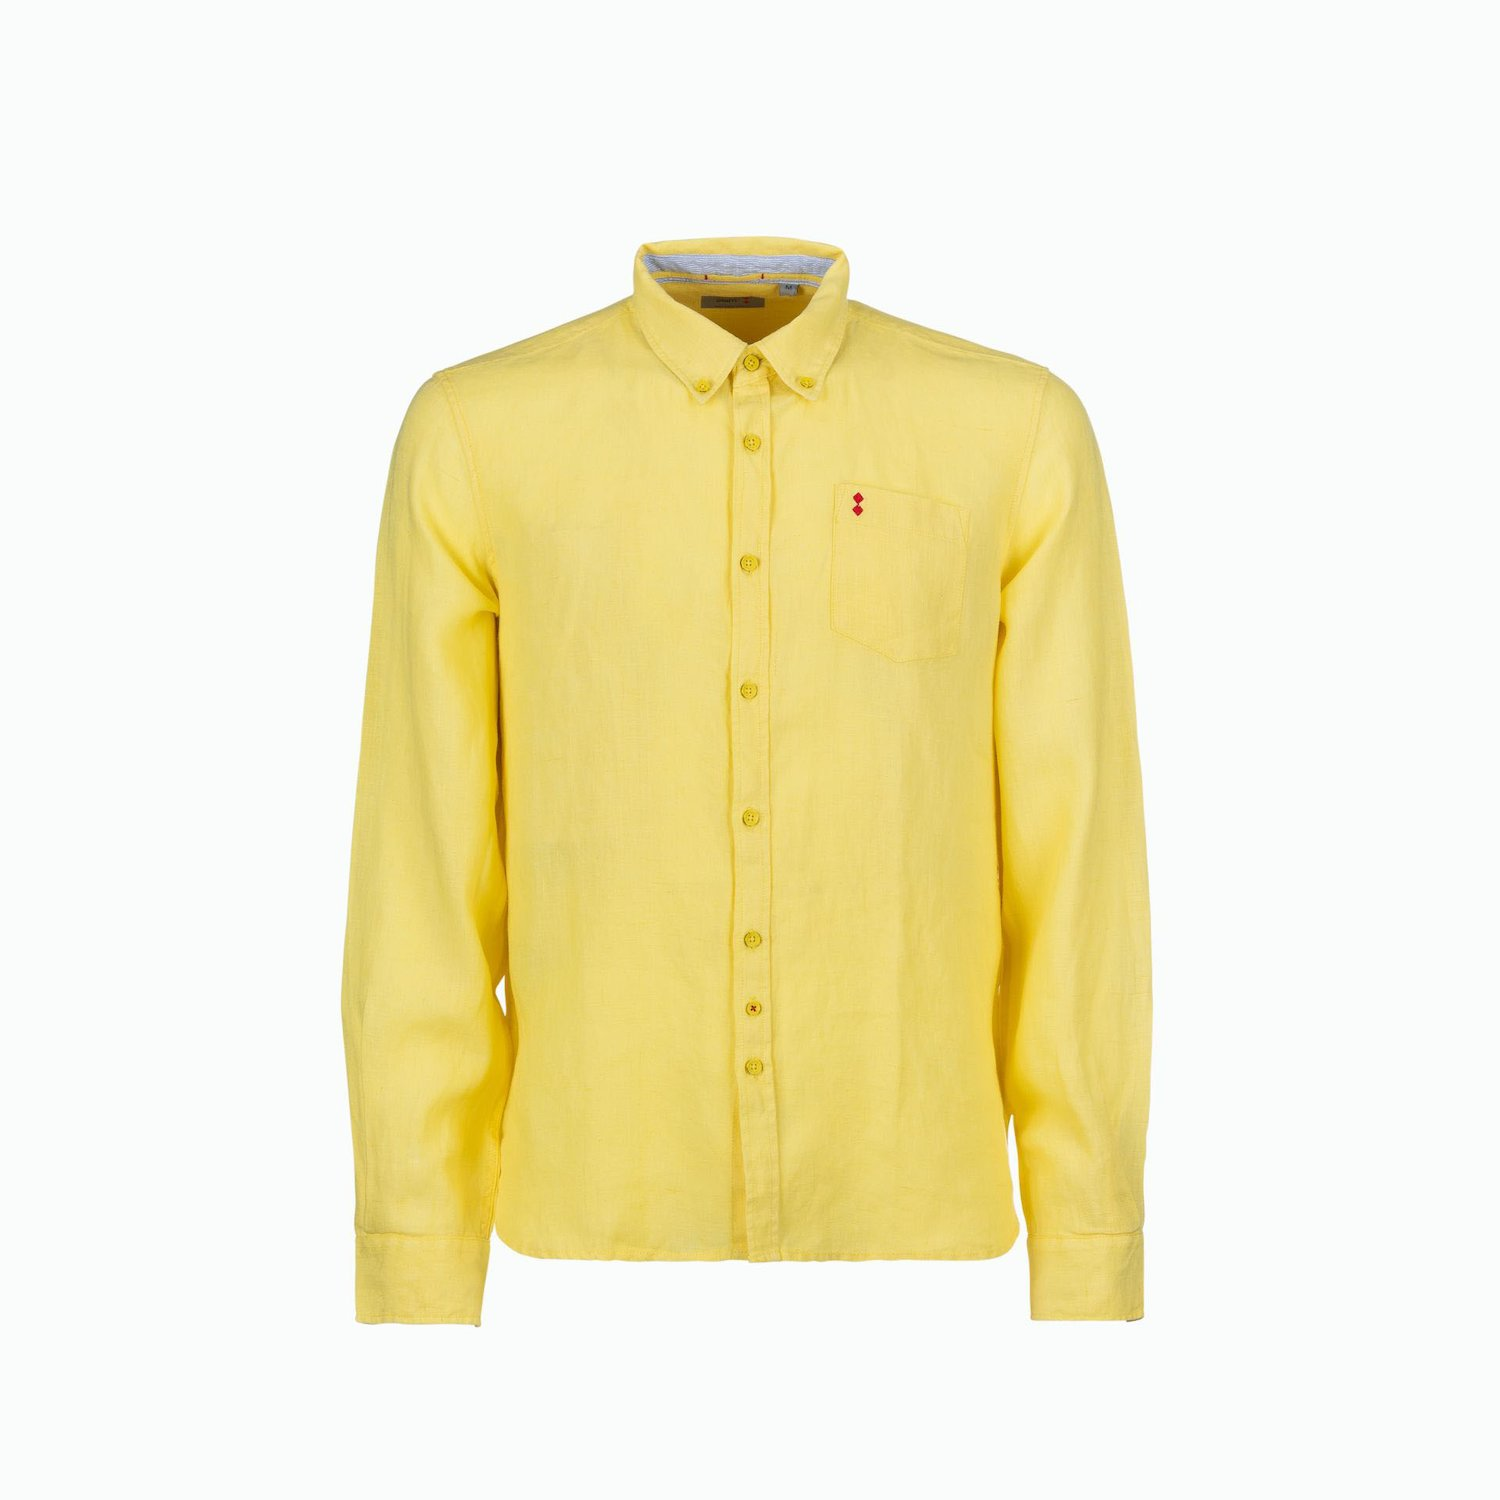 C16 Shirt - Lemon